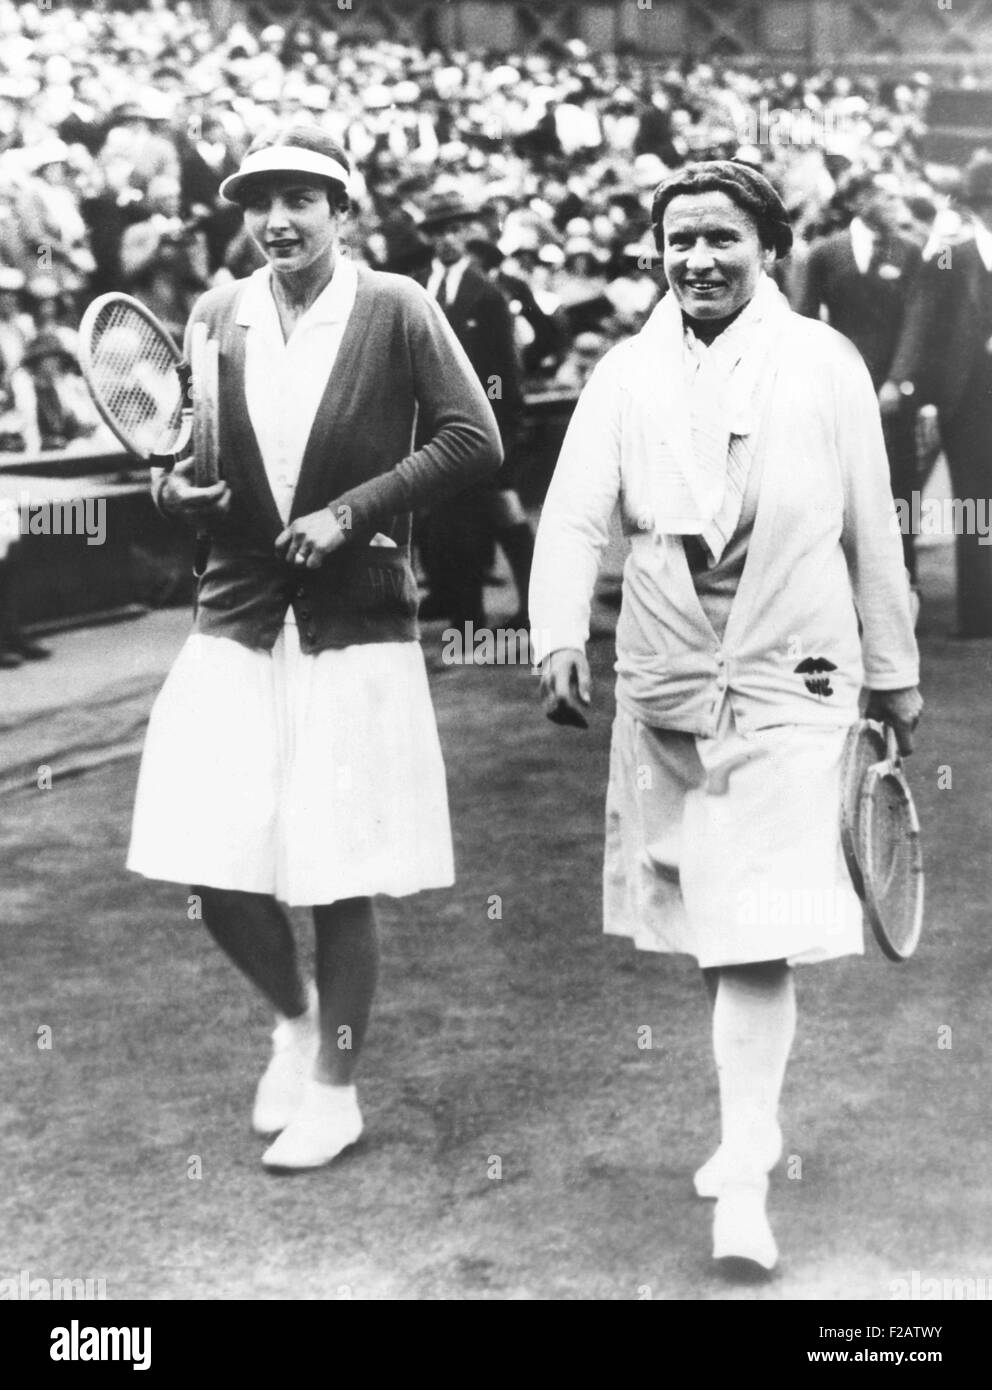 Helen Wills Moody and Elizabeth Ryan leaving the Wimbledon court after their finals match. July 11, 1930. Wills - Stock Image